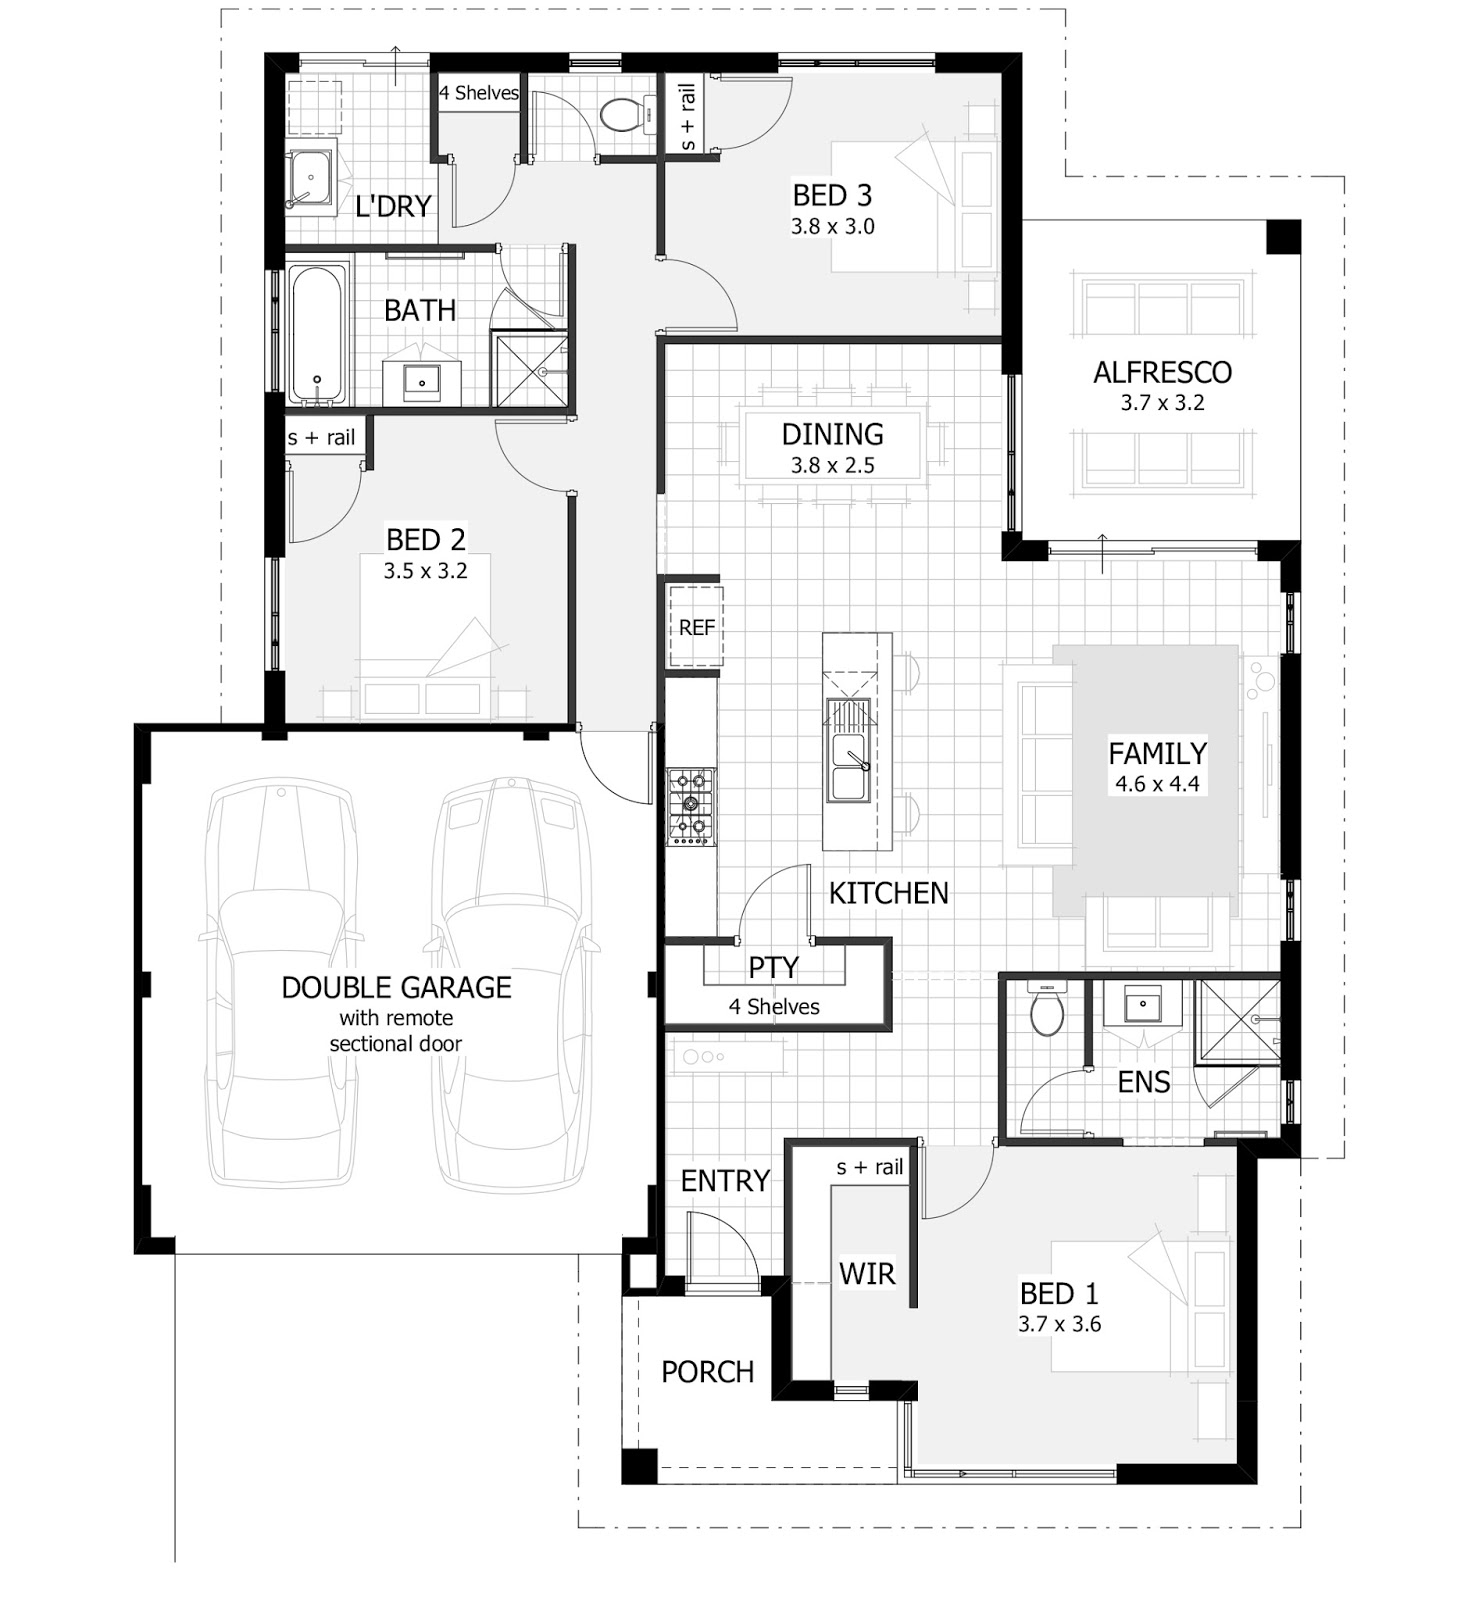 Luxury holiday small villas floor plans with 3 to 4 Ground floor 3 bedroom plans